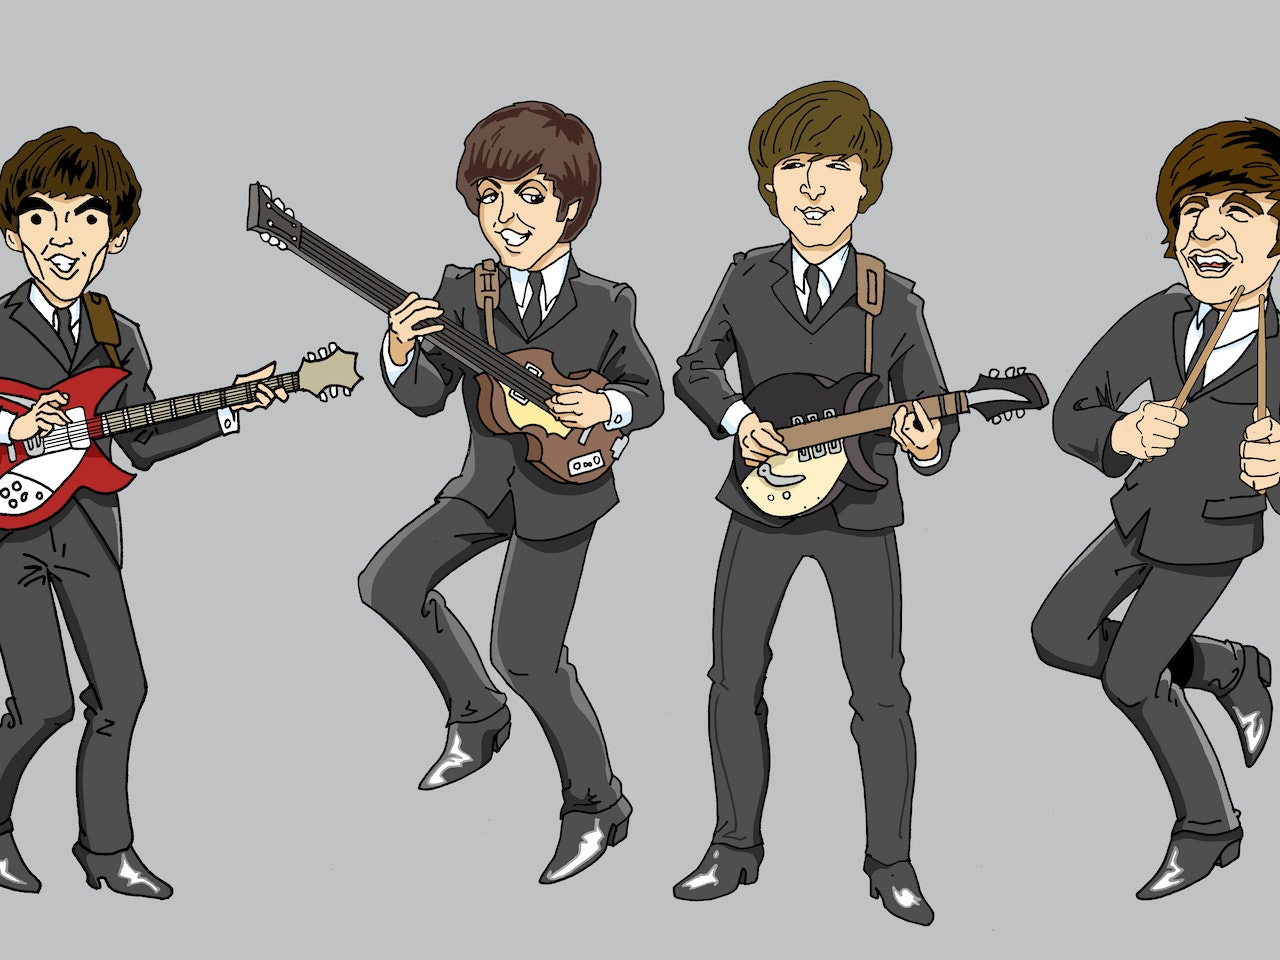 funny happy humorous comical colourful graphic cartoon anime FAB 4  beatles liverpool john paul george ringo moptop music merseybeat retro 1960 swinging '60s